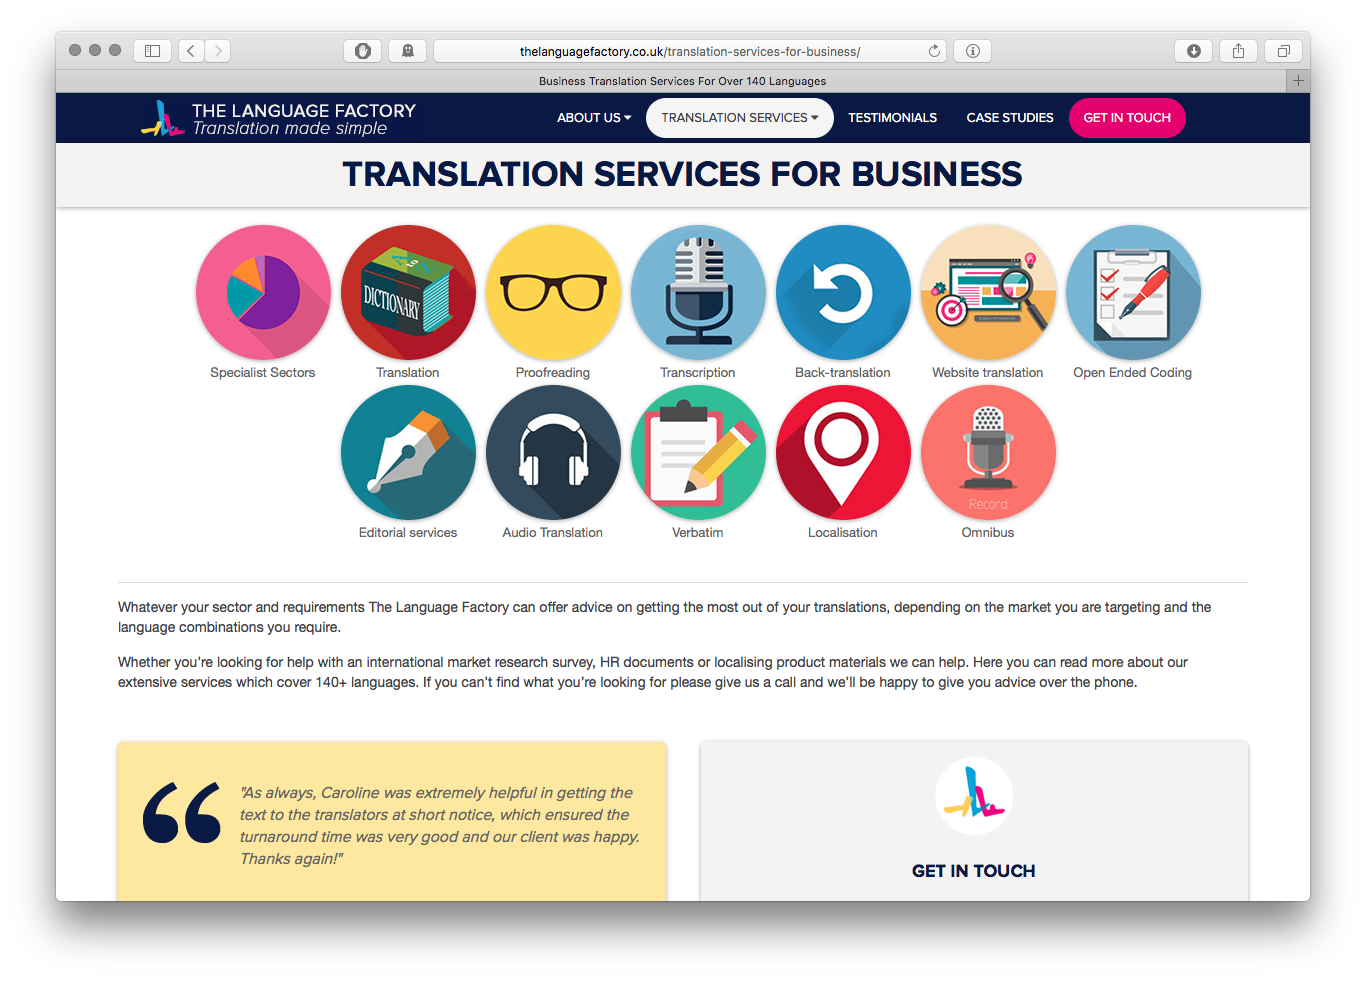 The Language Factory translation services page